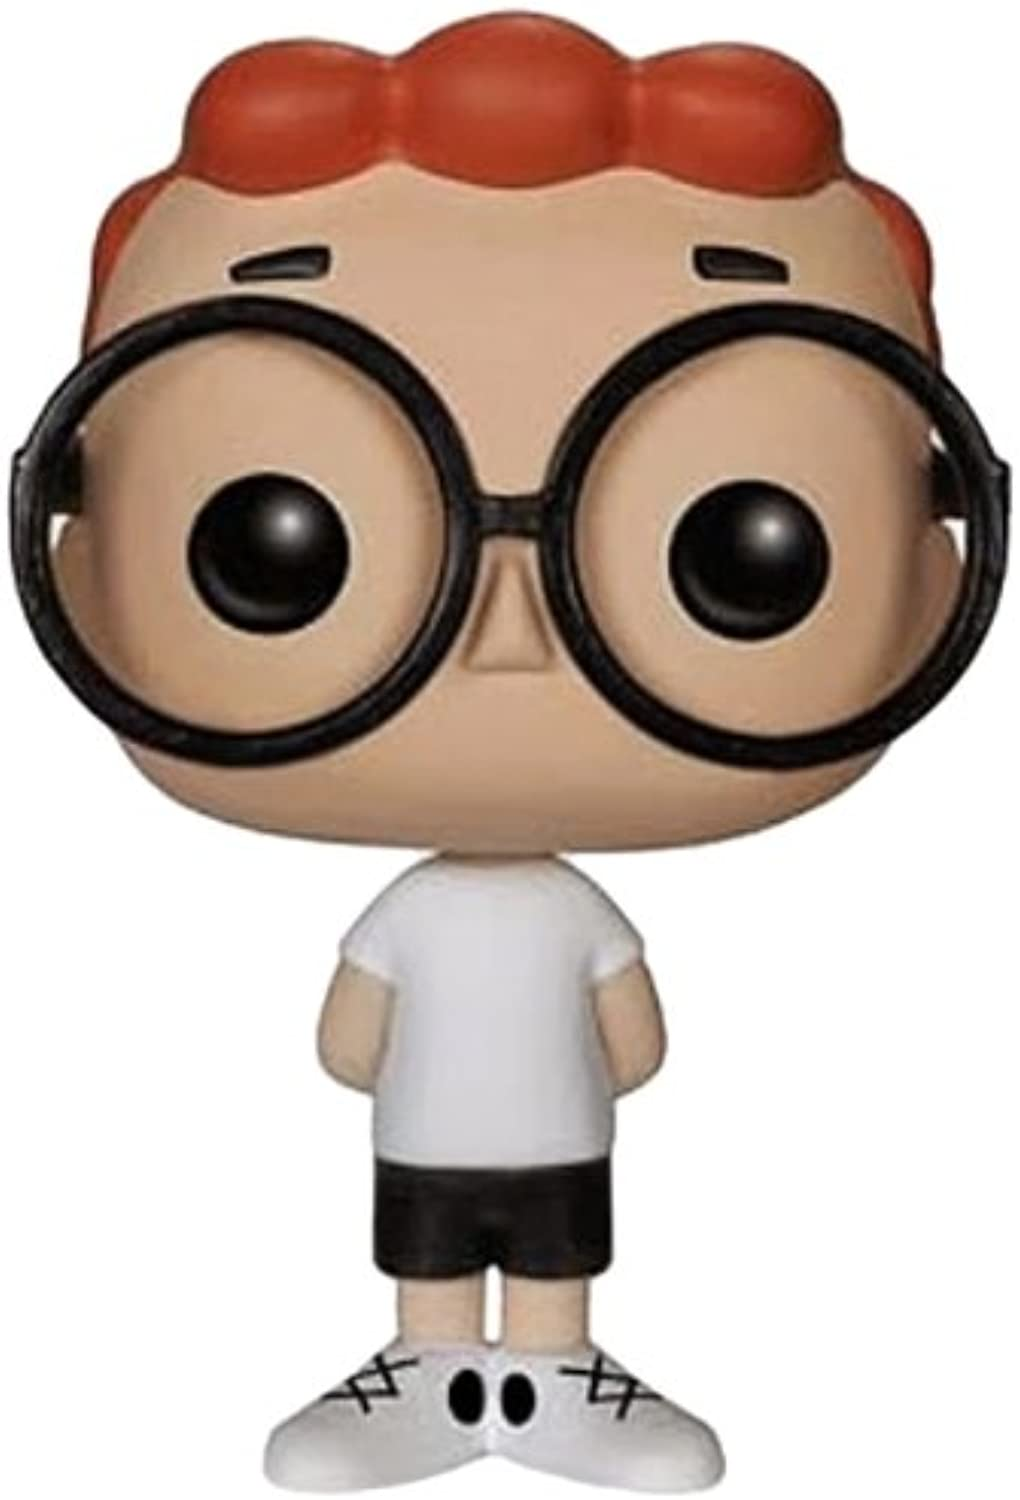 Funko - Figurine Mr Peabody & Sherman - Sherman Pop 10cm - 0849803037833